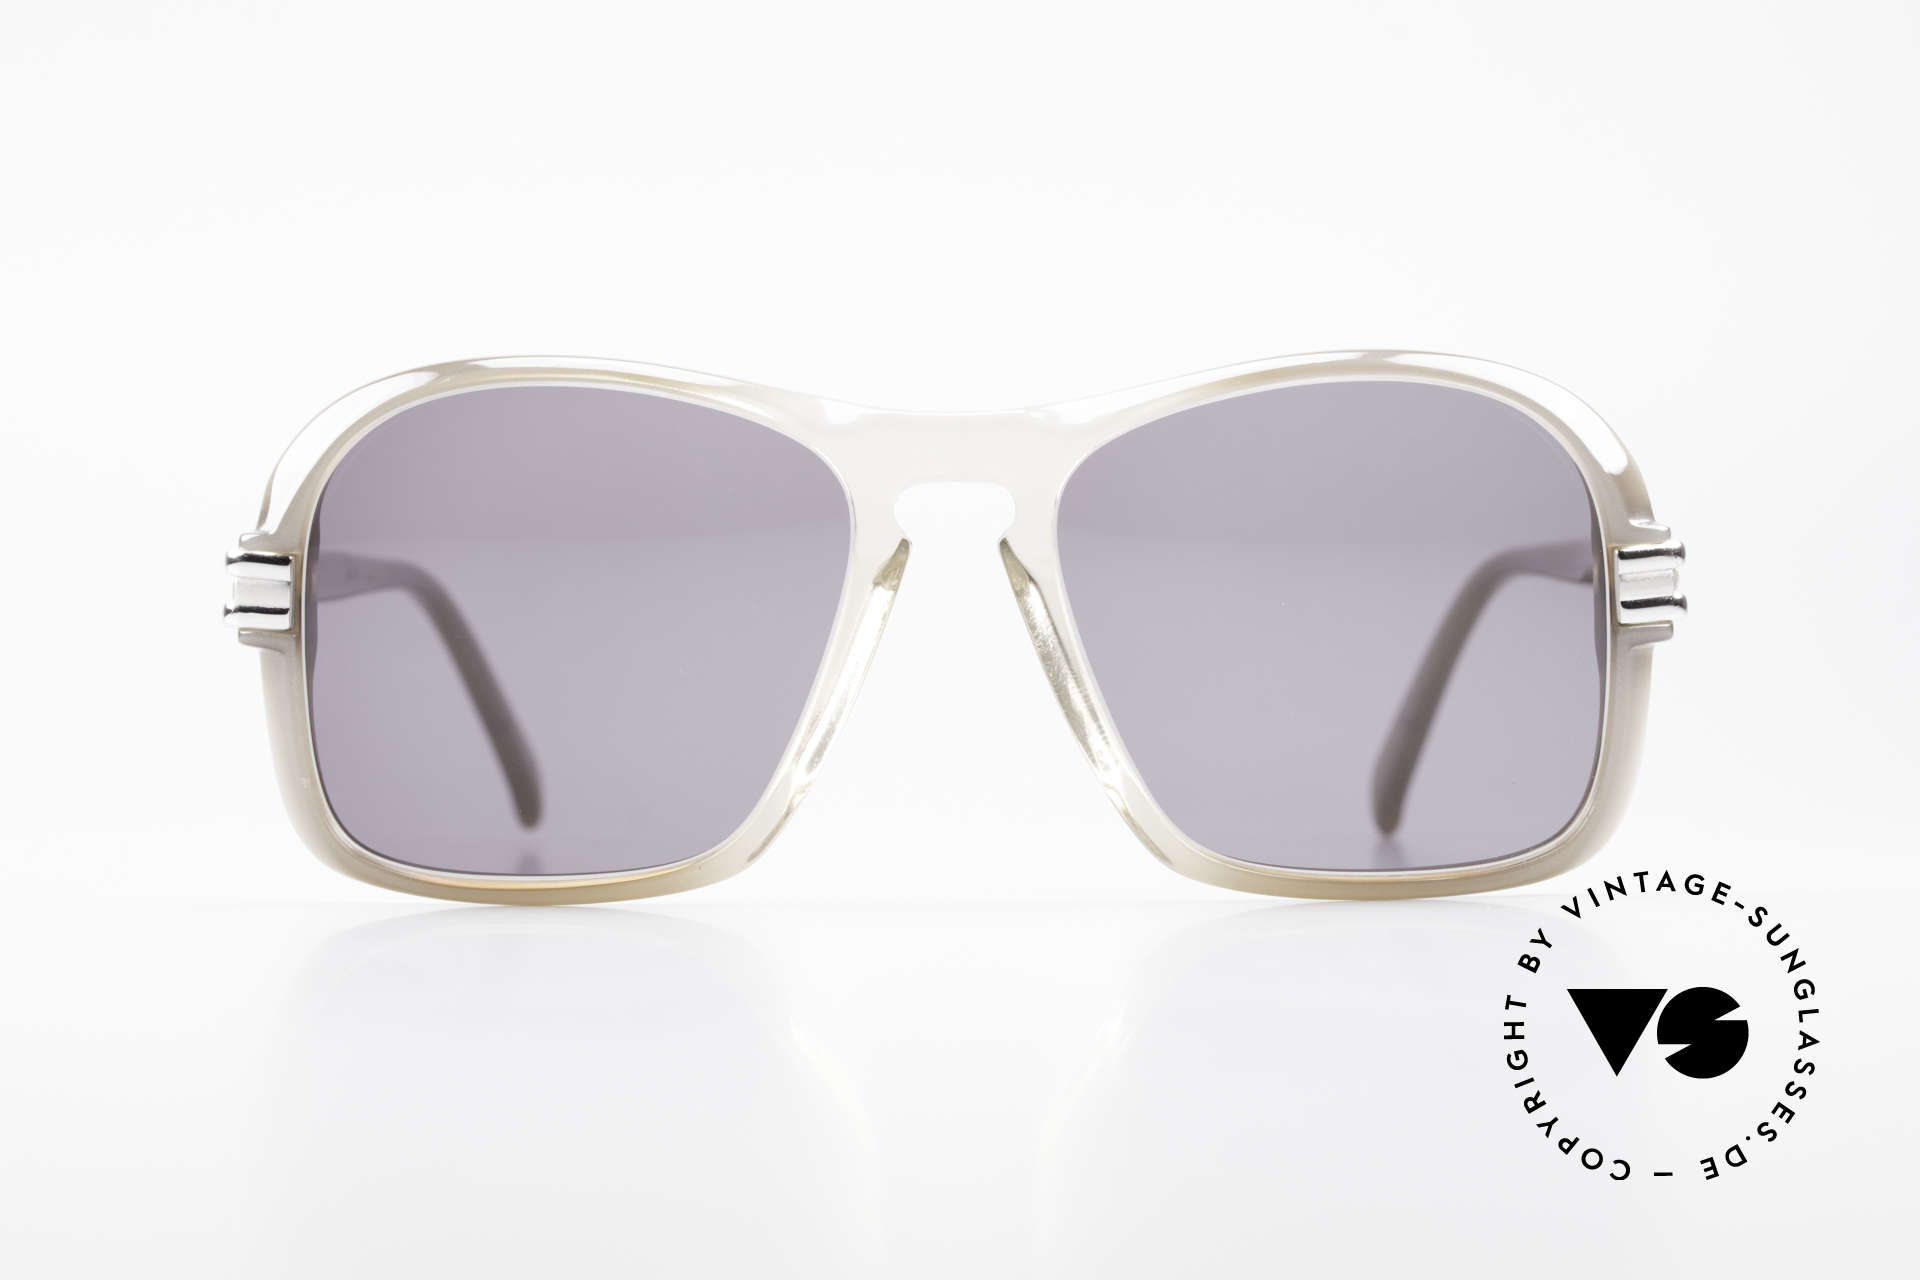 Cazal 606 70's Frame First Cazal Series, model of the first series by CAri ZALloni (CAZAL), ever!, Made for Men